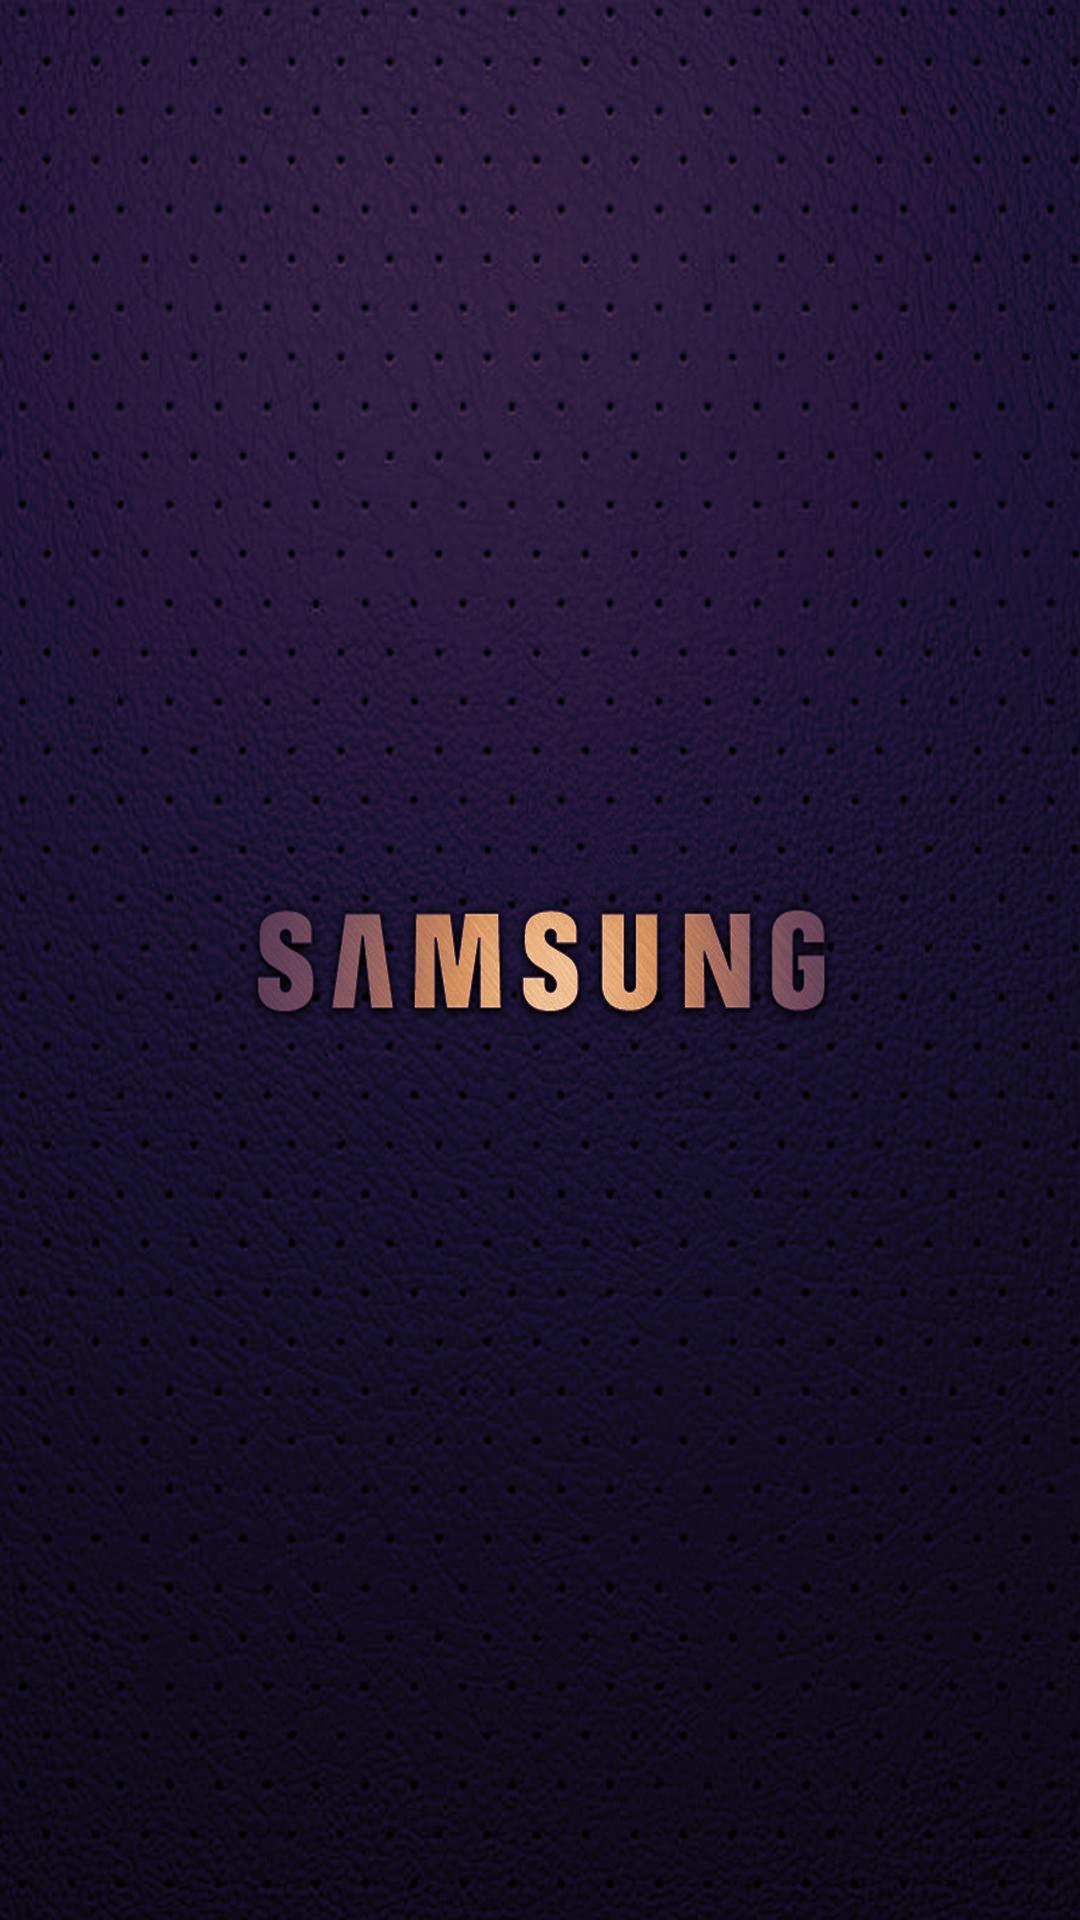 Download 9700 Wallpaper Samsung Gratis